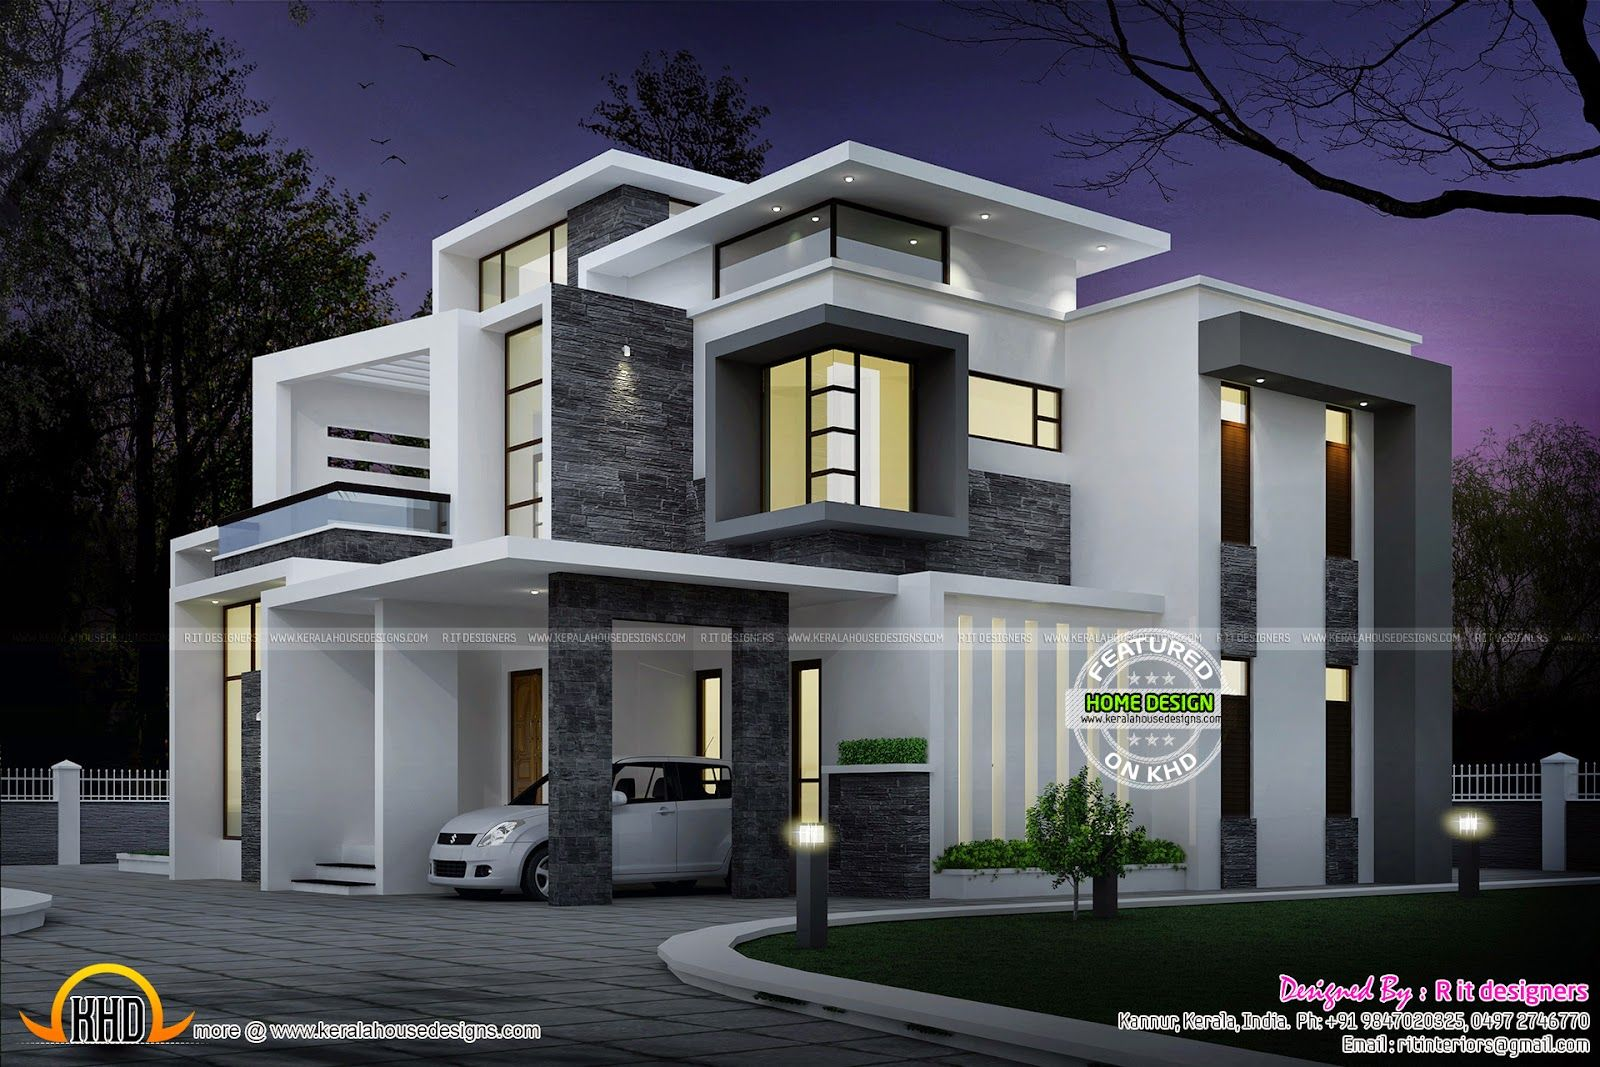 Home design house - Side Elevation View Grand Contemporary Home Design Night View Of 3 Bedroom Attached